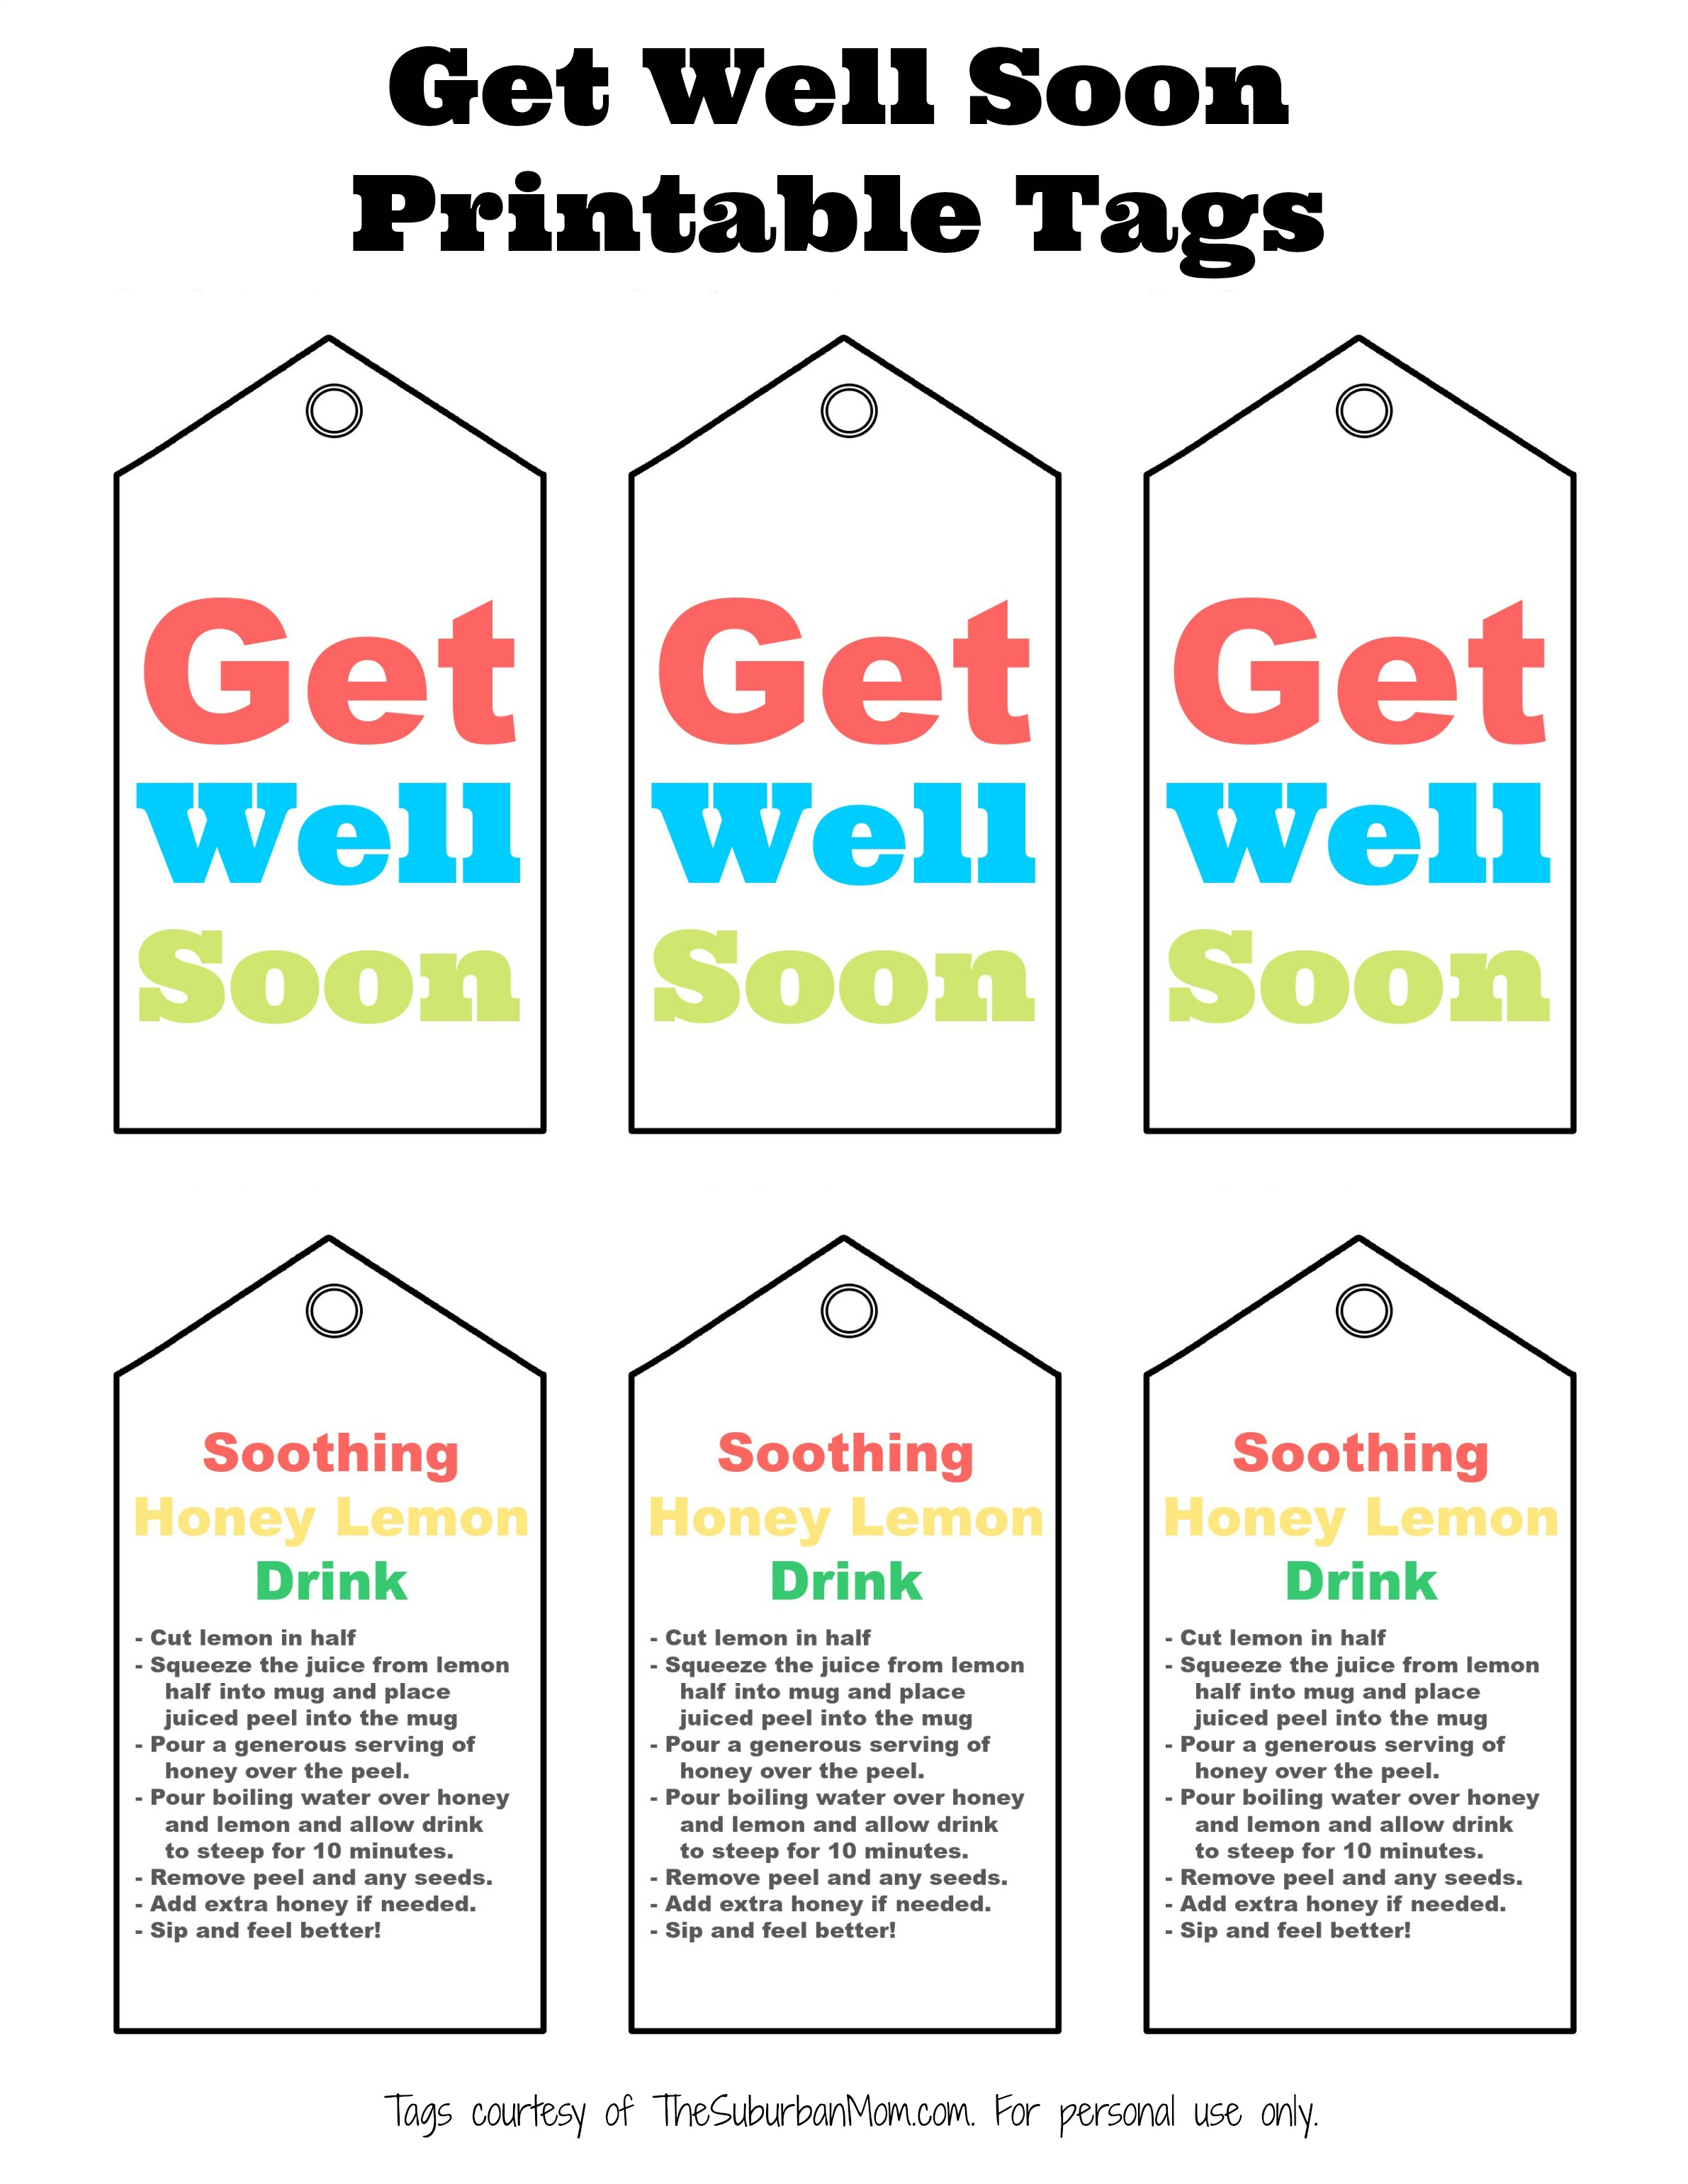 Get well soon gift basket with free printable tag download get well soon printable tag with soothing honey lemon drink recipe negle Gallery